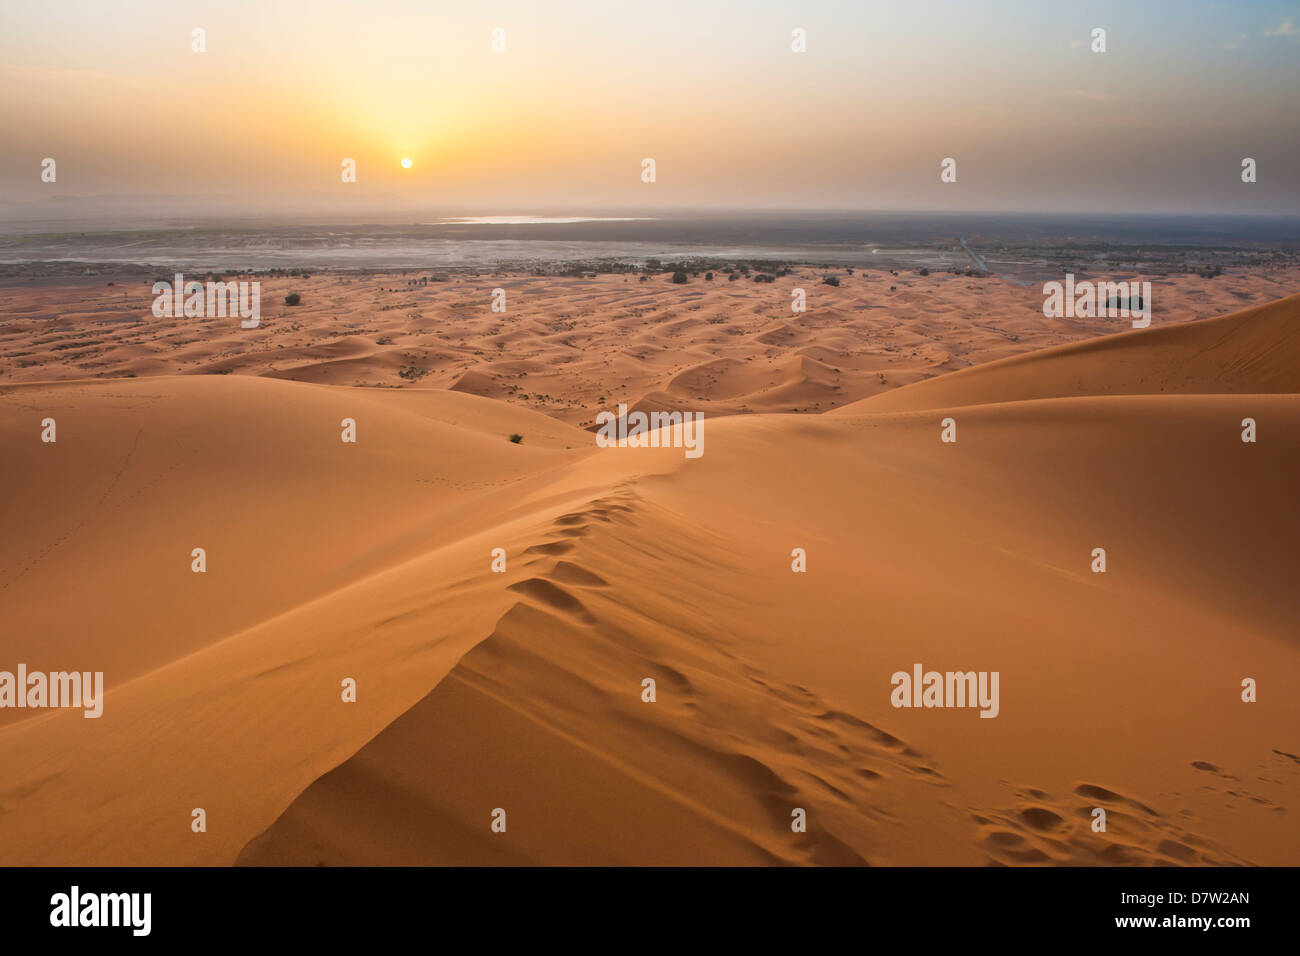 Sunset at Erg Chebbi Desert from the top of a 150m sand dune, Sahara Desert near Merzouga, Morocco, North Africa - Stock Image